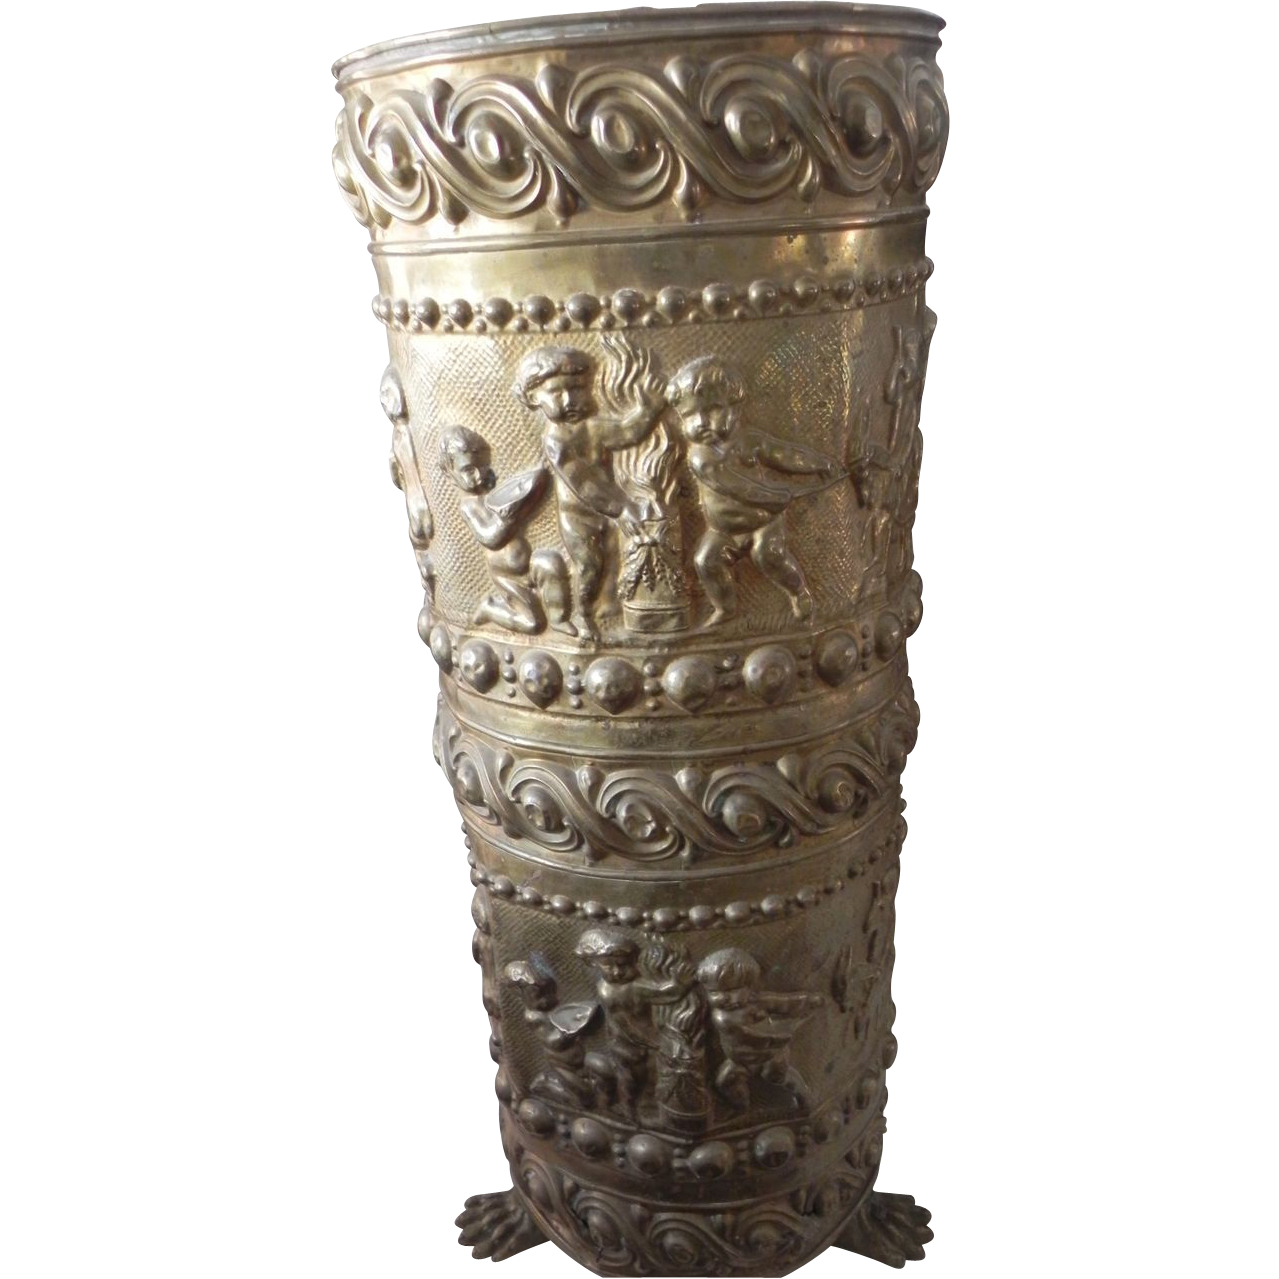 Antique French Repousse Brass Umbrella Stand with Cherubs